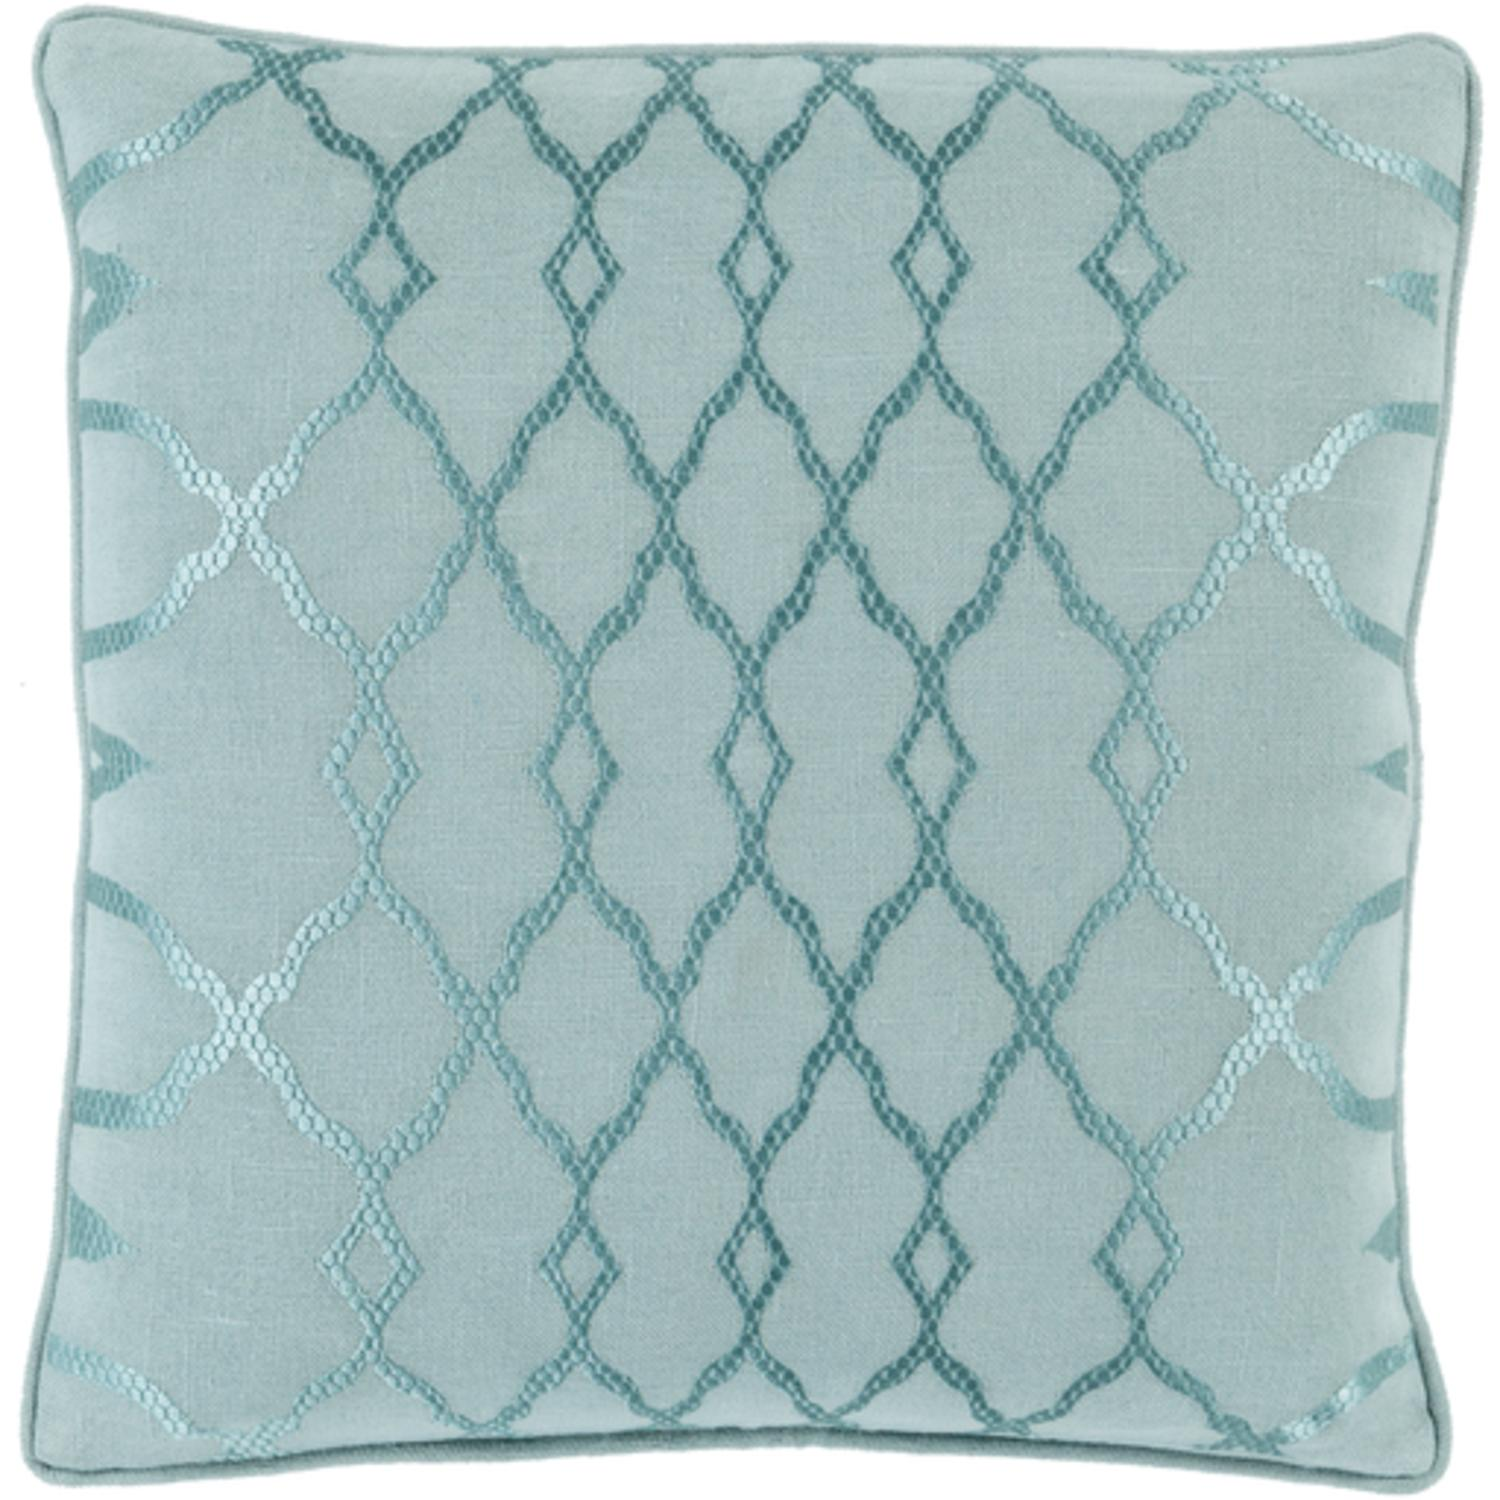 "20"" Mint and Seafoam Green Diamond Hand-Made Woven Decorative Throw Pillow"